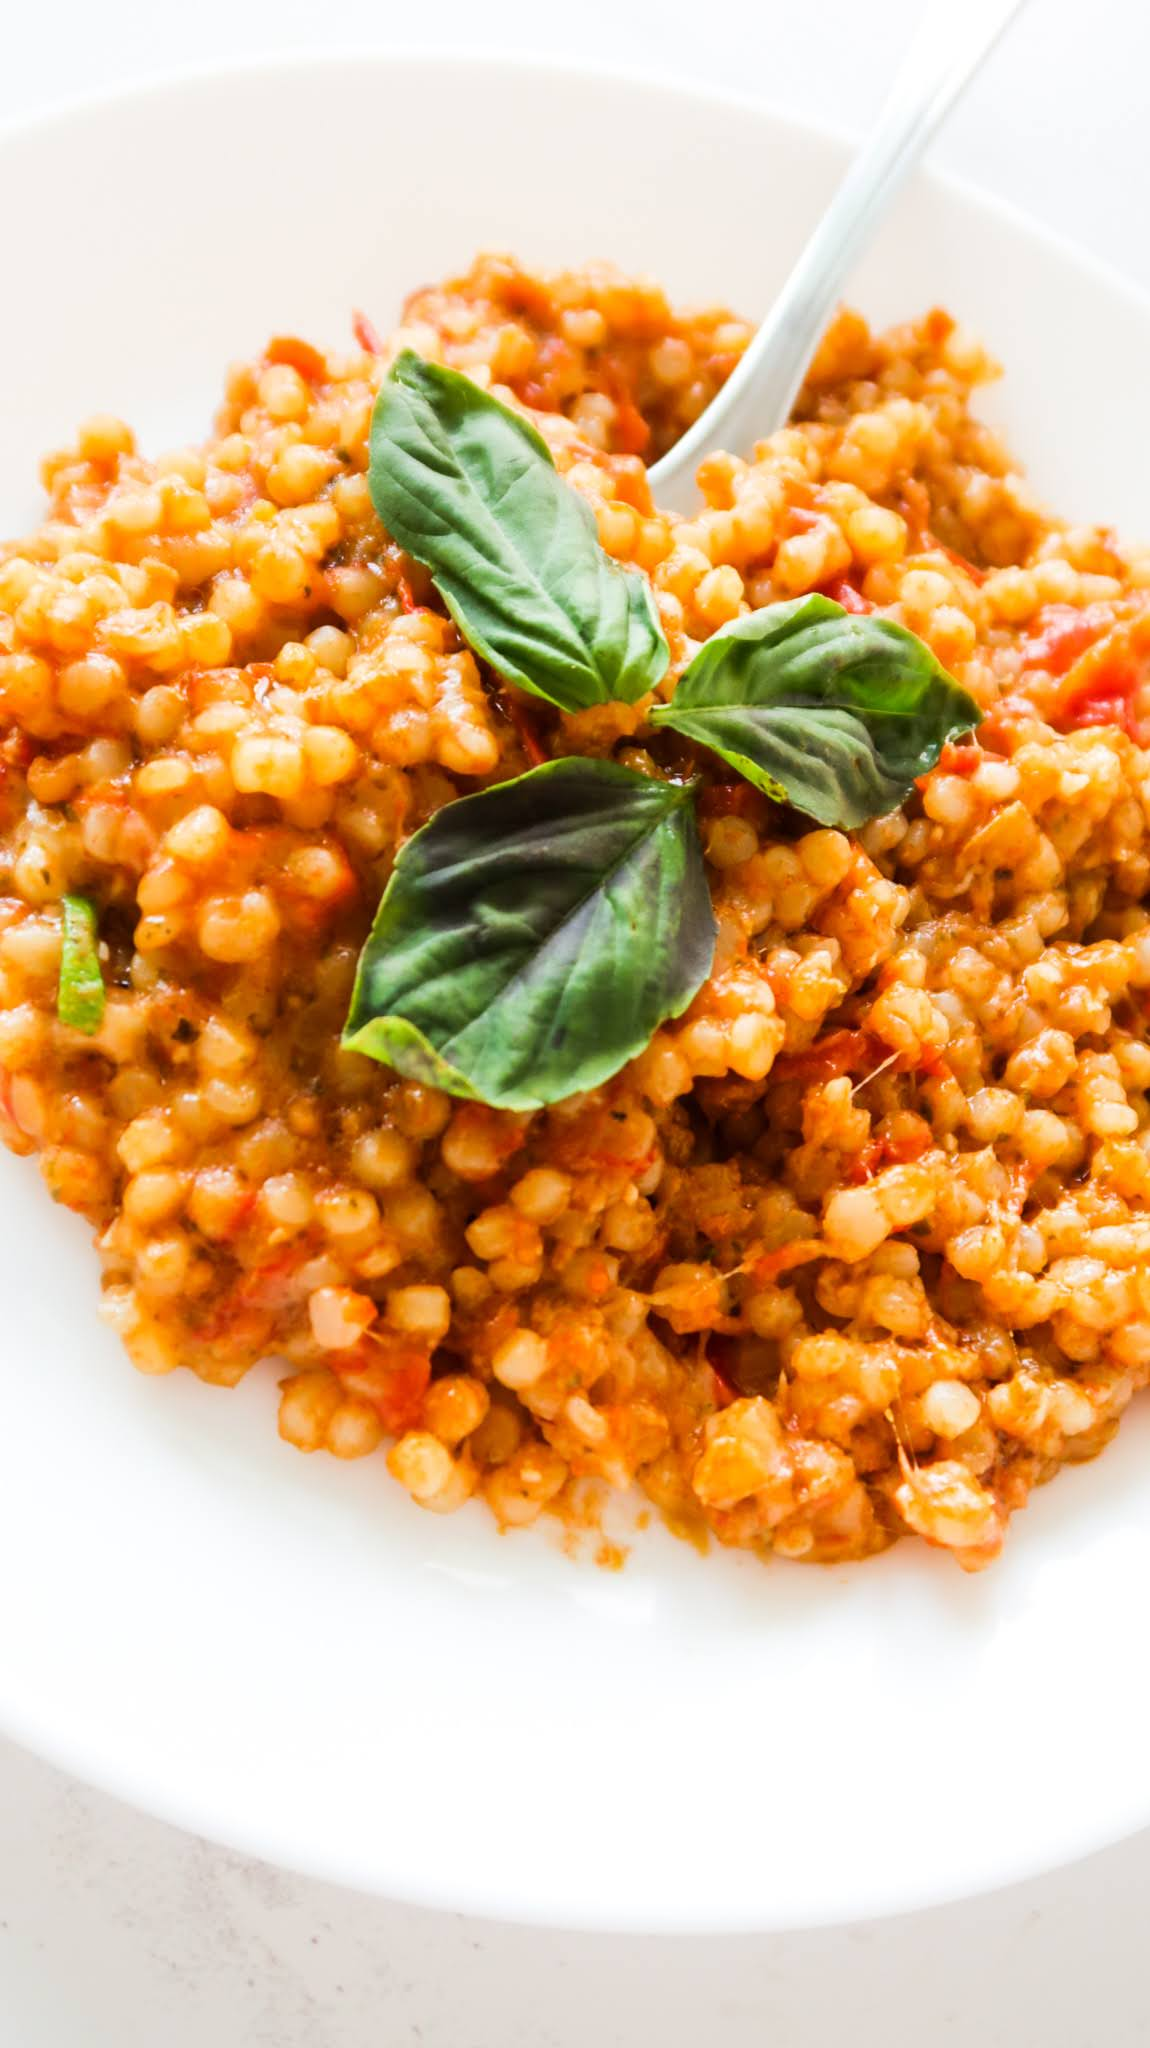 Tomato basil couscous recipe! This is an easy pasta dish that is super tasty and only 6 ingredients. Super quick vegetarian healthy weeknight dinner or side dish!